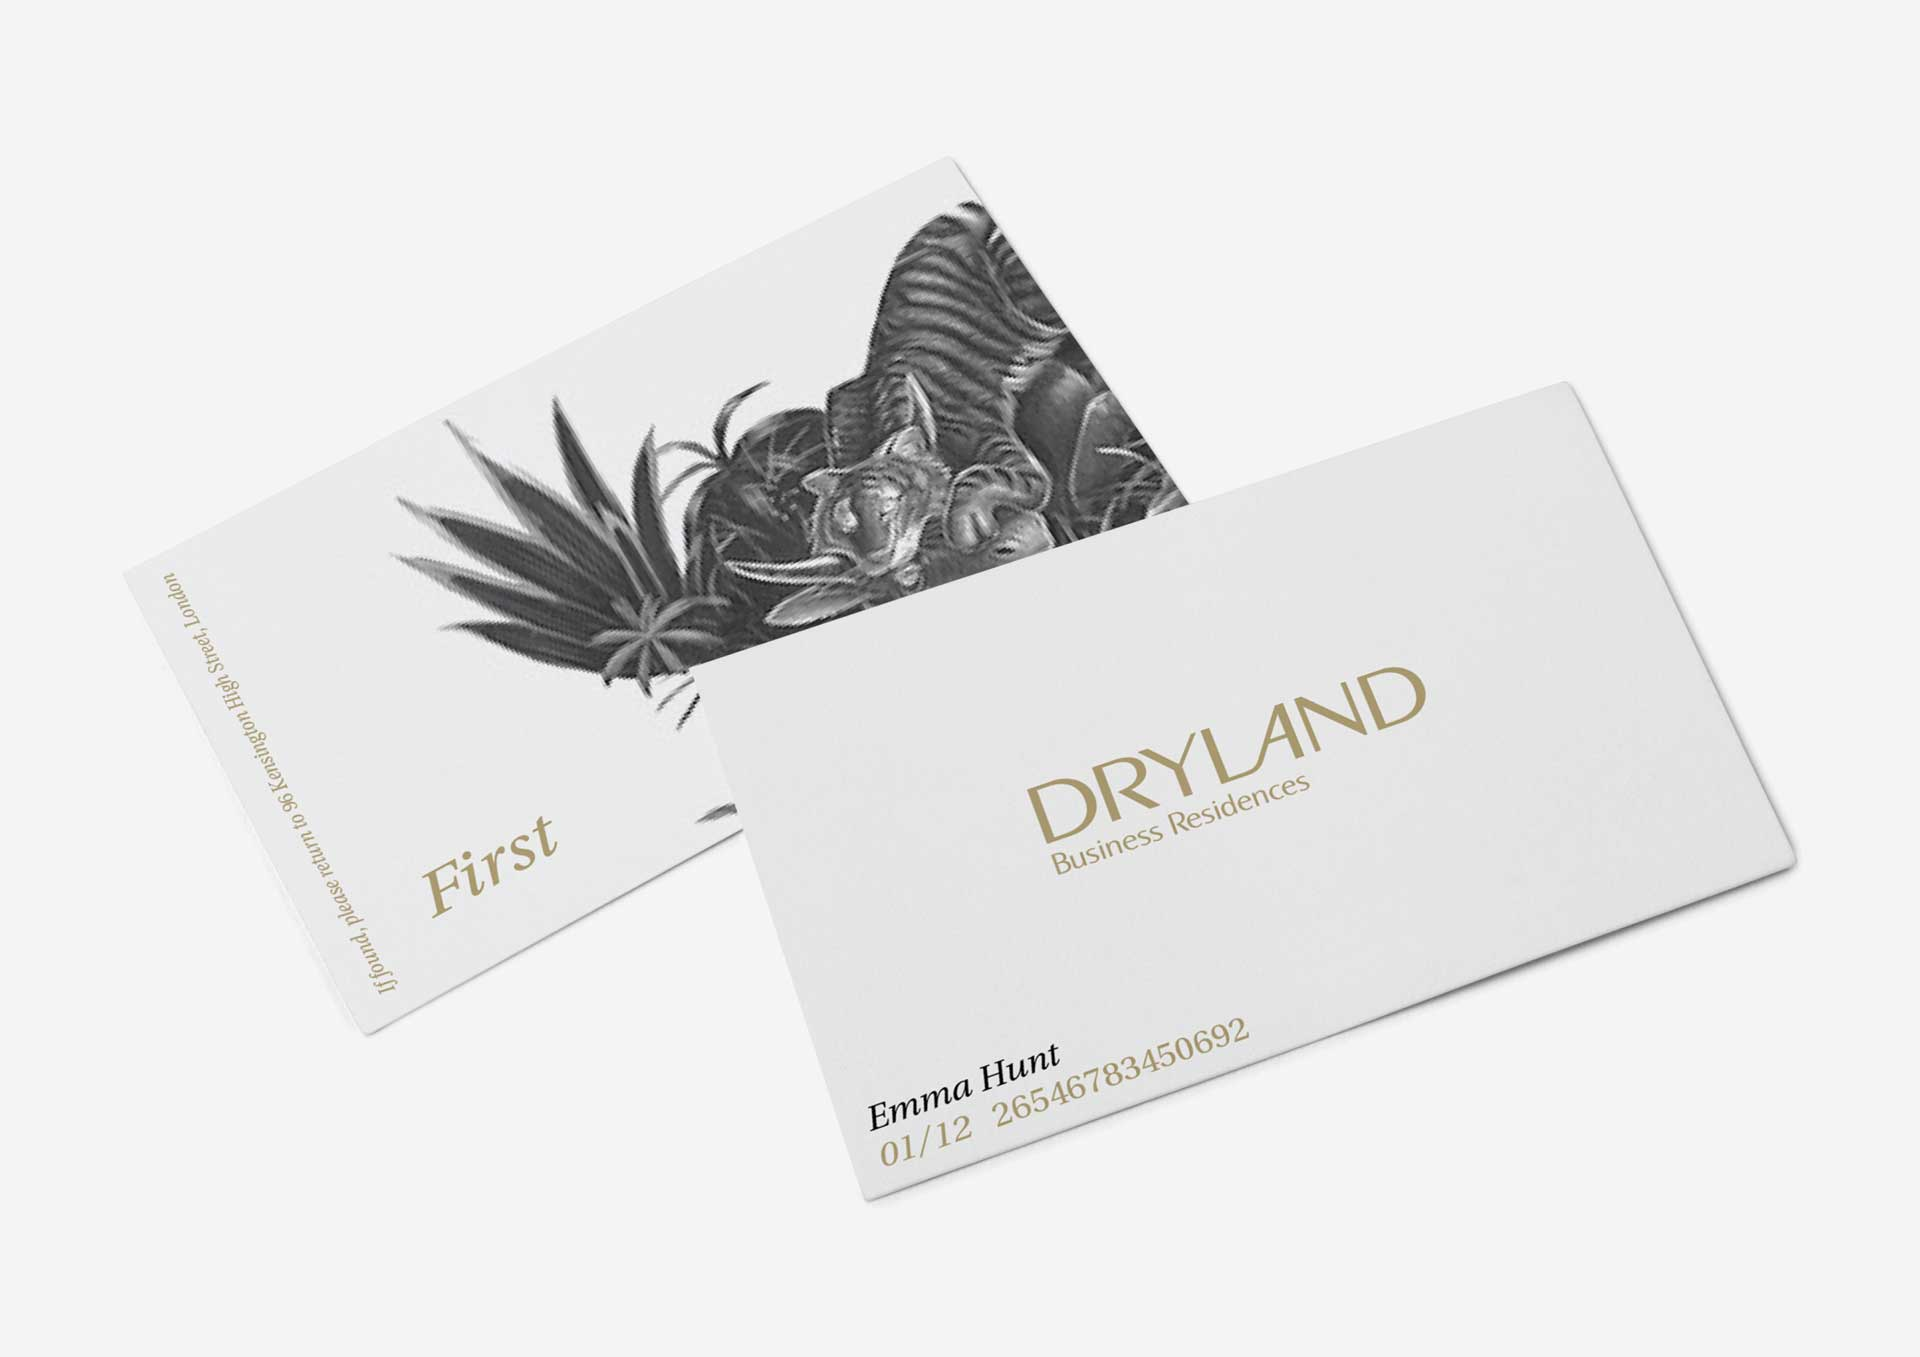 dryland-business-cards-3